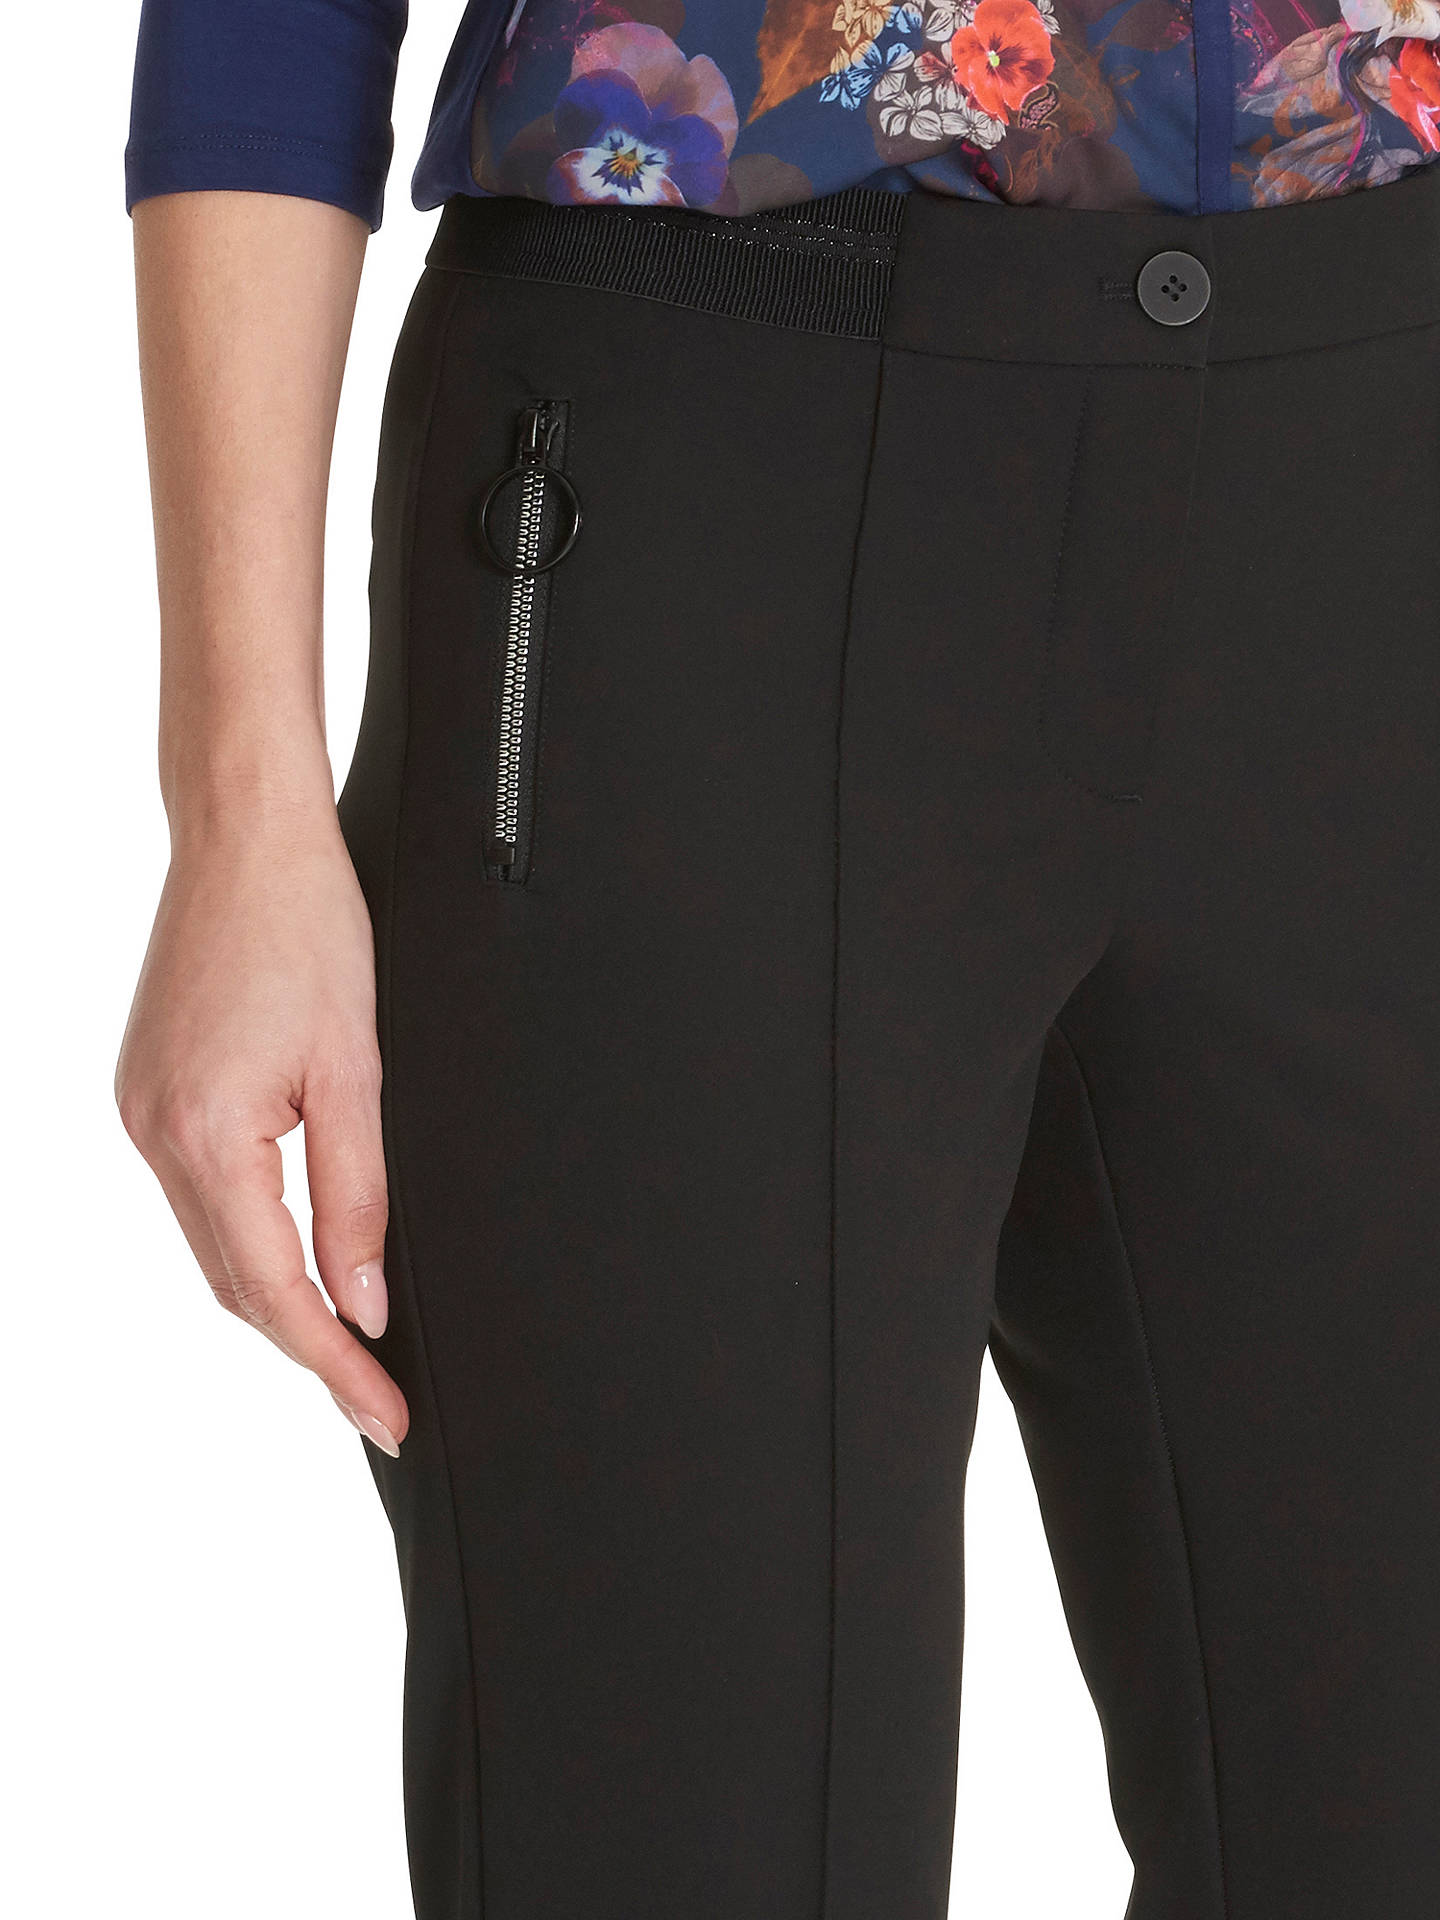 Buy Betty Barclay Crepe Tailored Trousers, Black, 10 Online at johnlewis.com